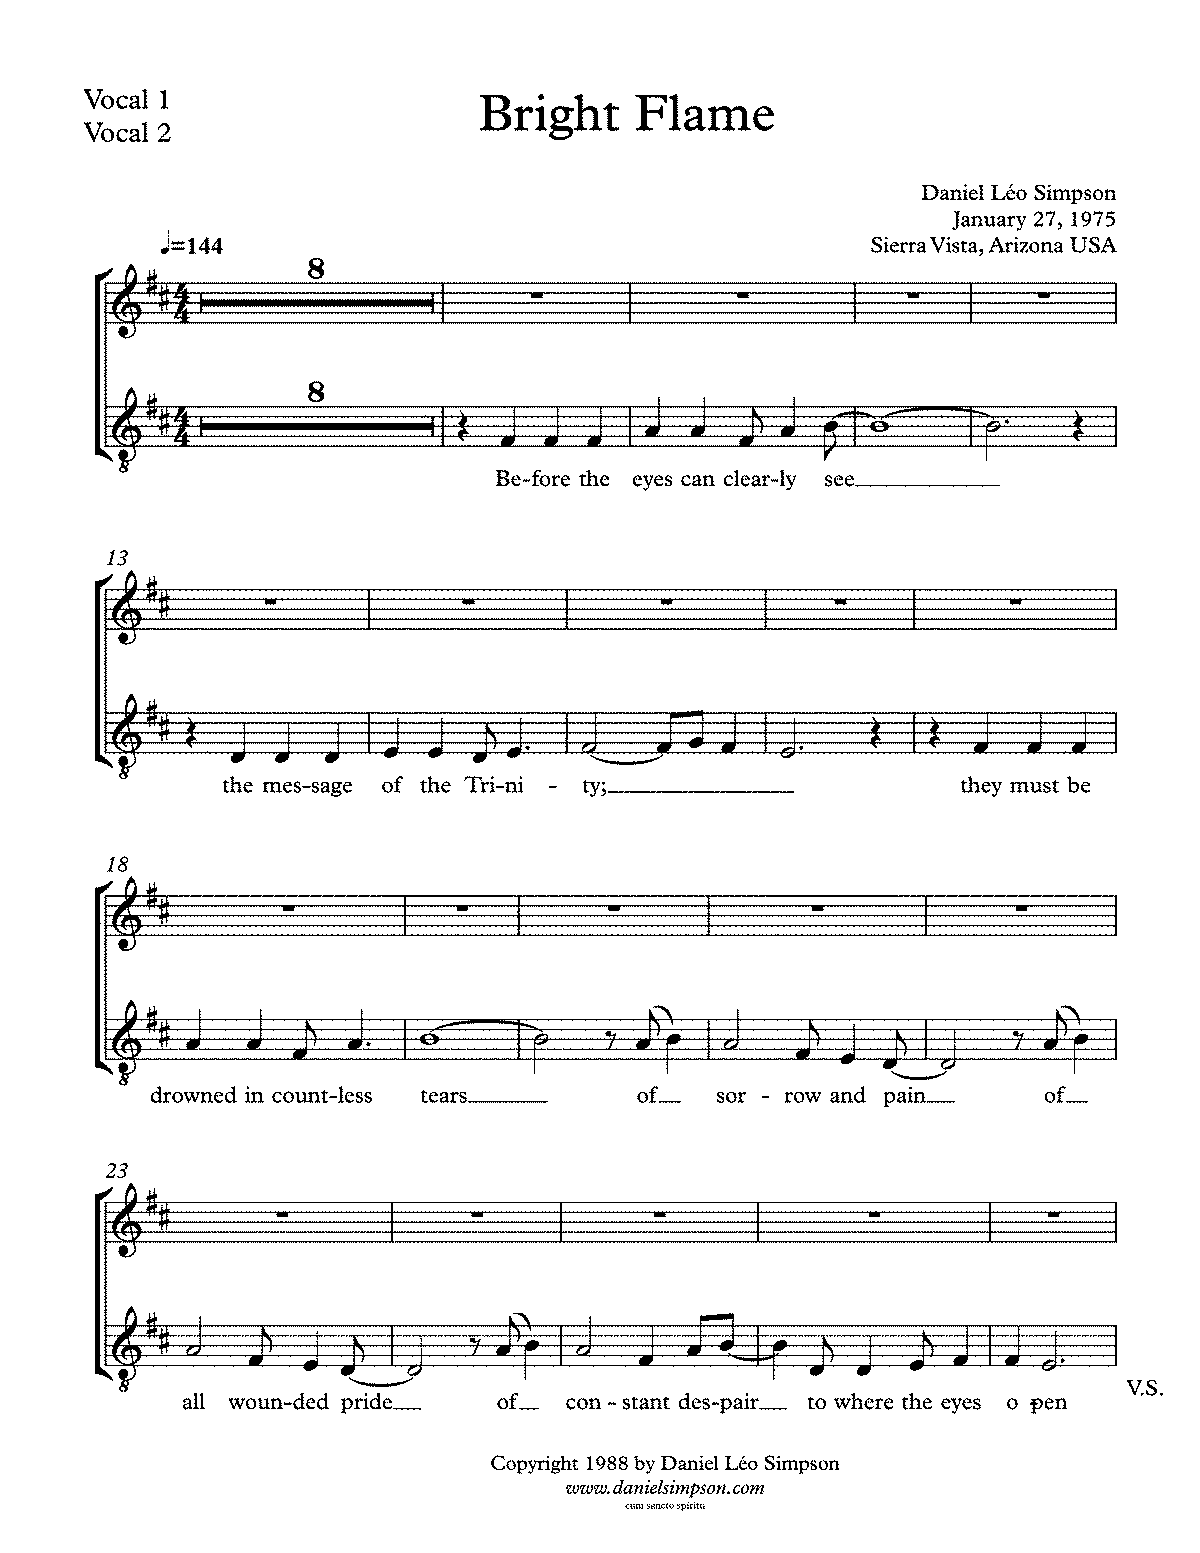 PMLP488953-VOCALS-Bright-Flame-simpson-full-score-imslp-110513.pdf